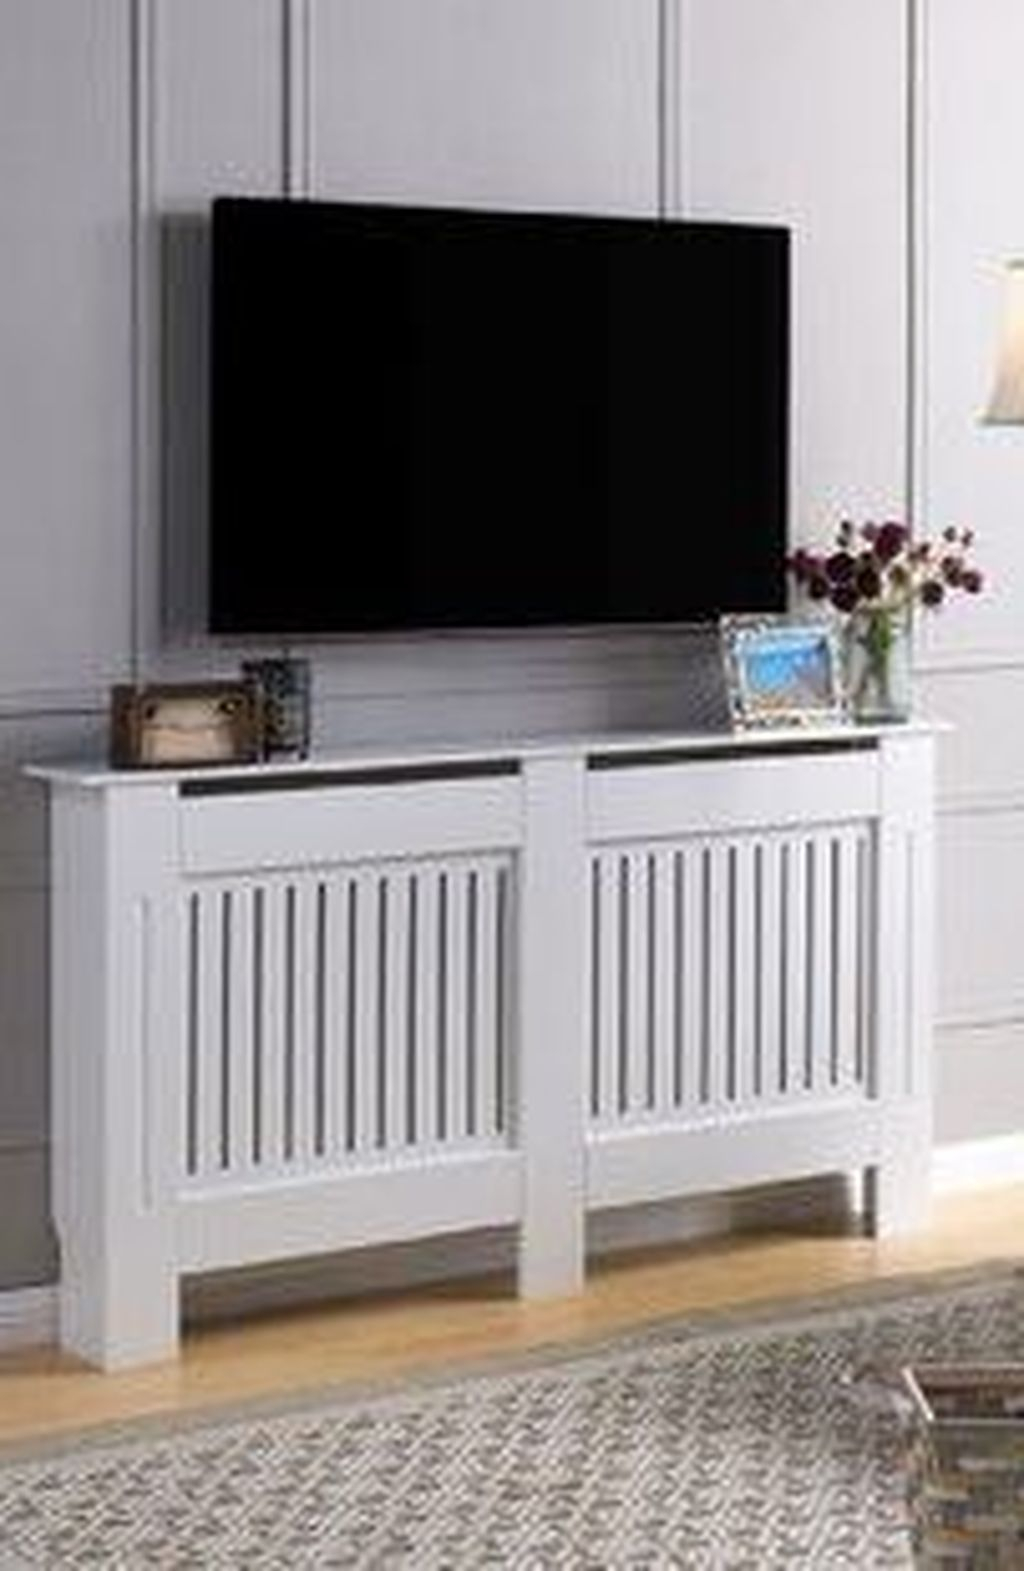 Inexpensive Radiators Design Ideas That Will Spruce Up Your Space 18